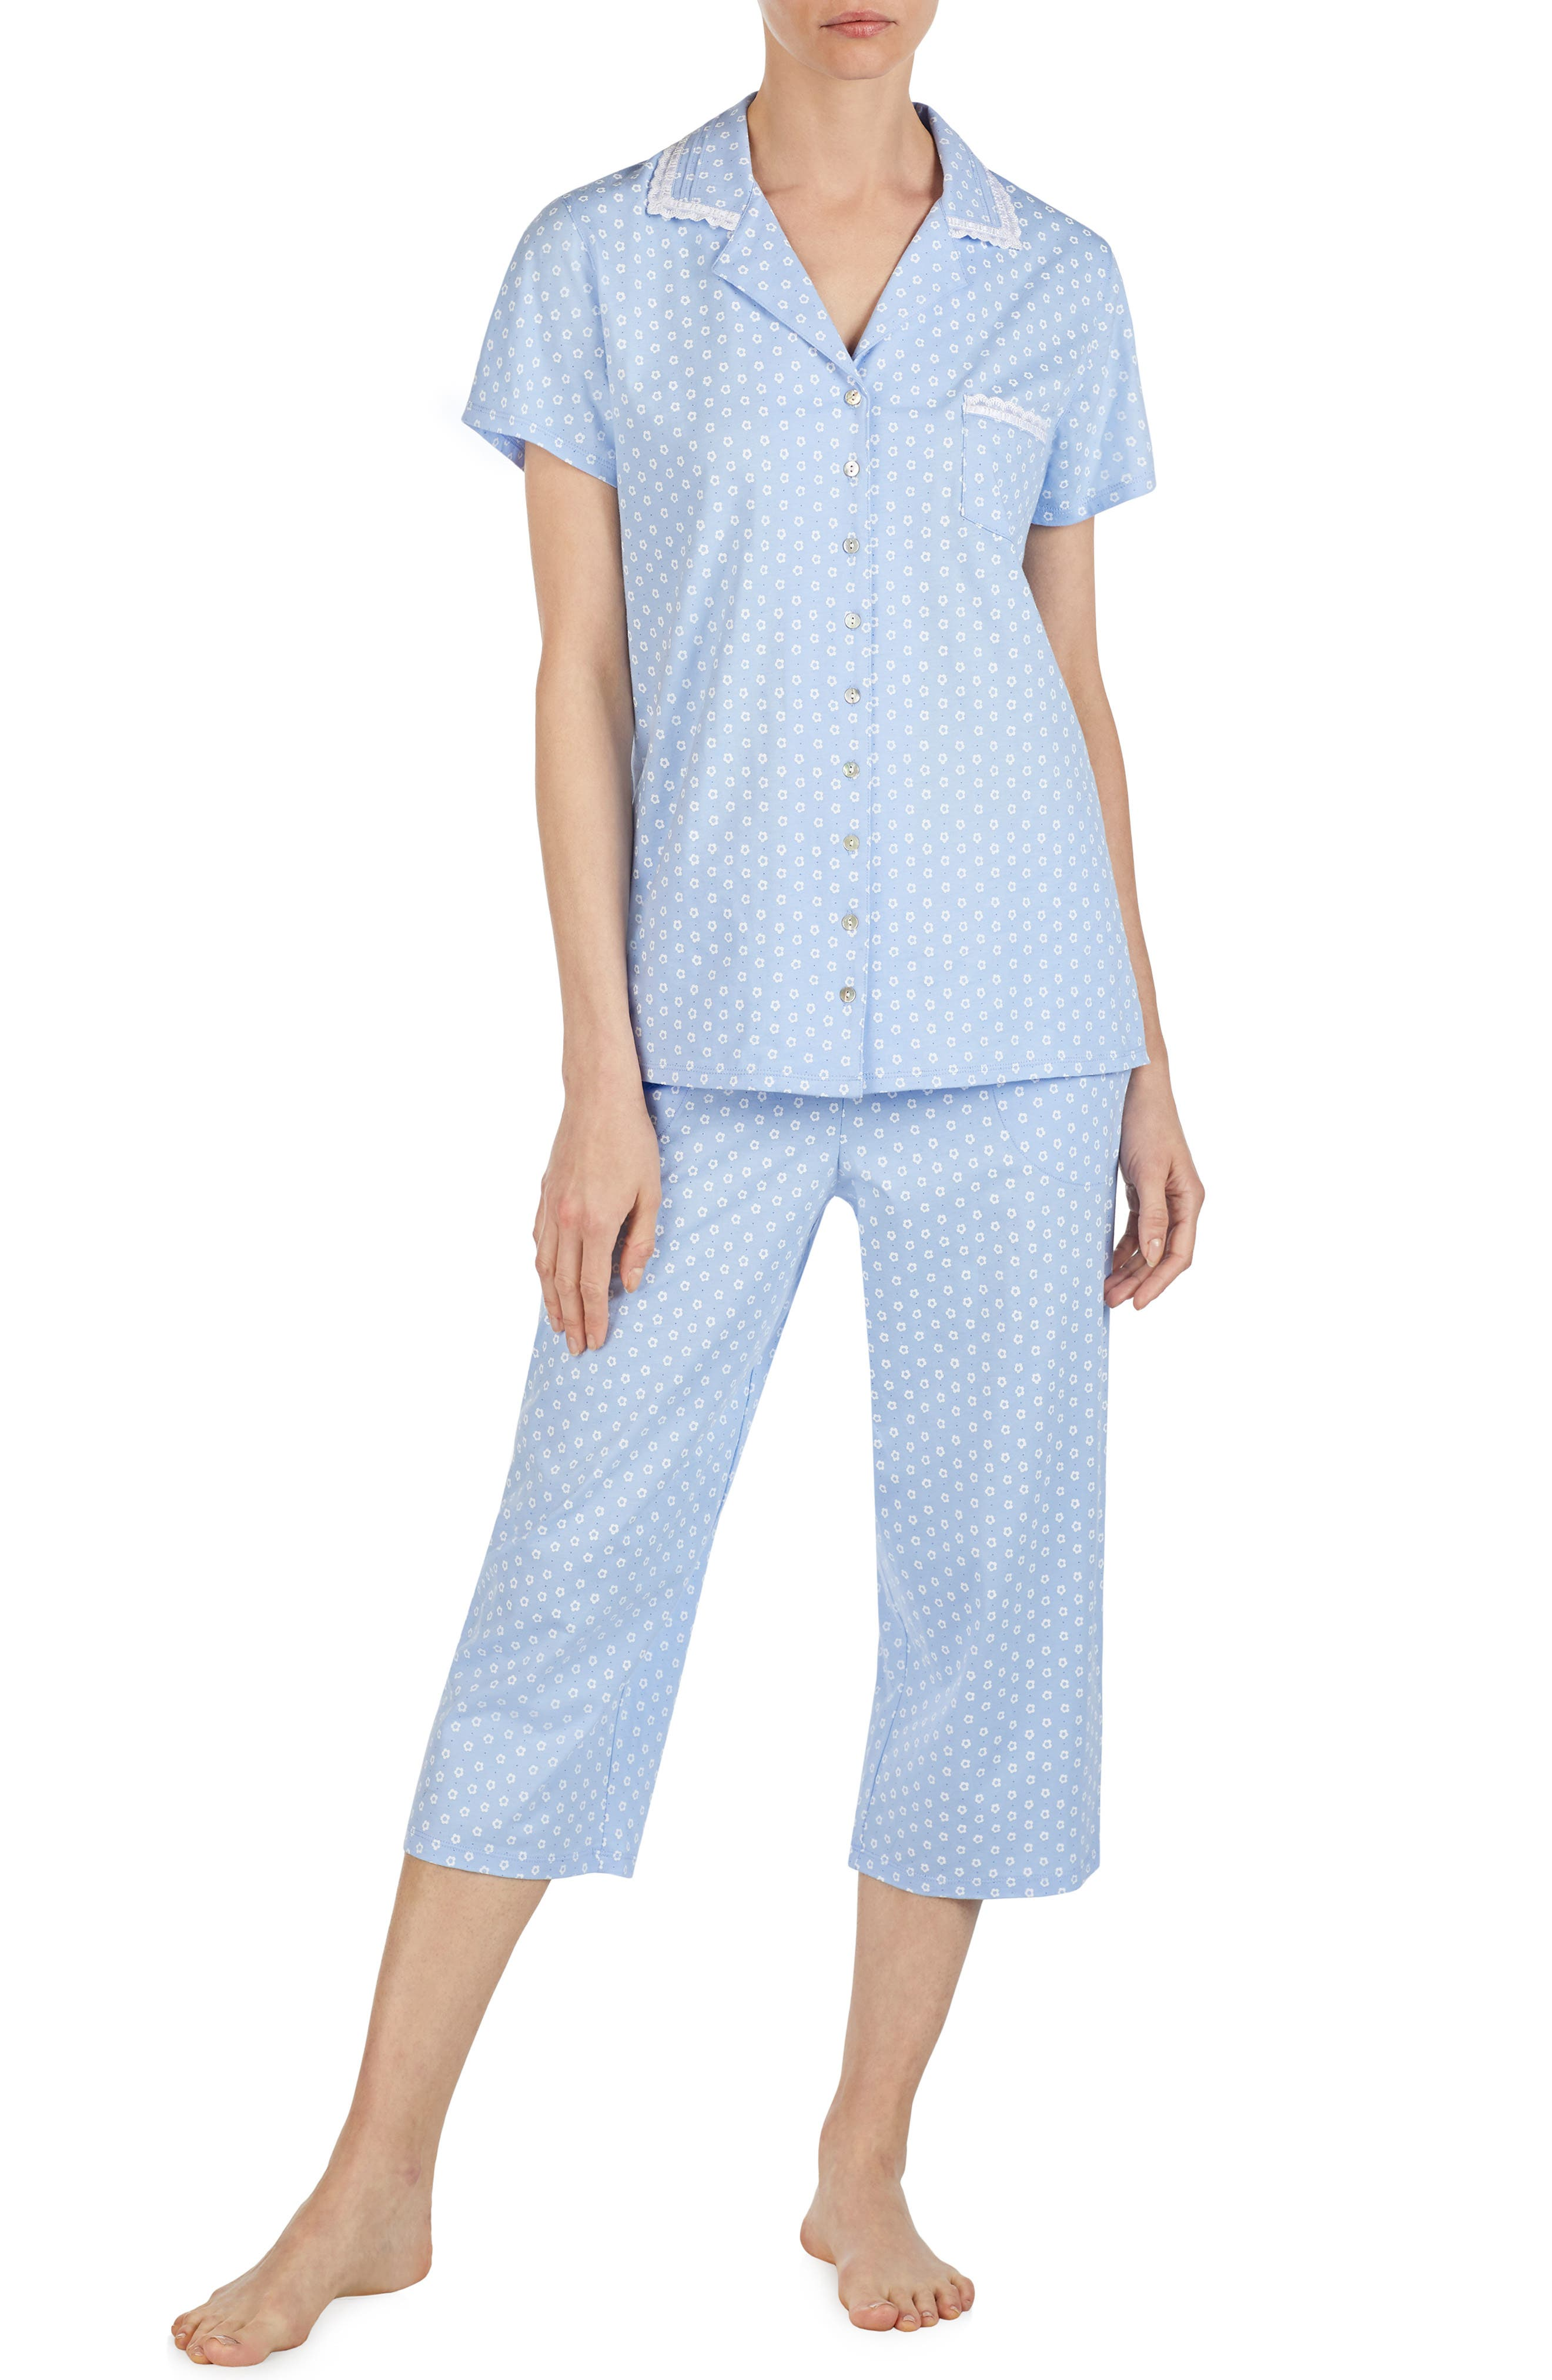 Eileen West Sleepwear  a7fa93193